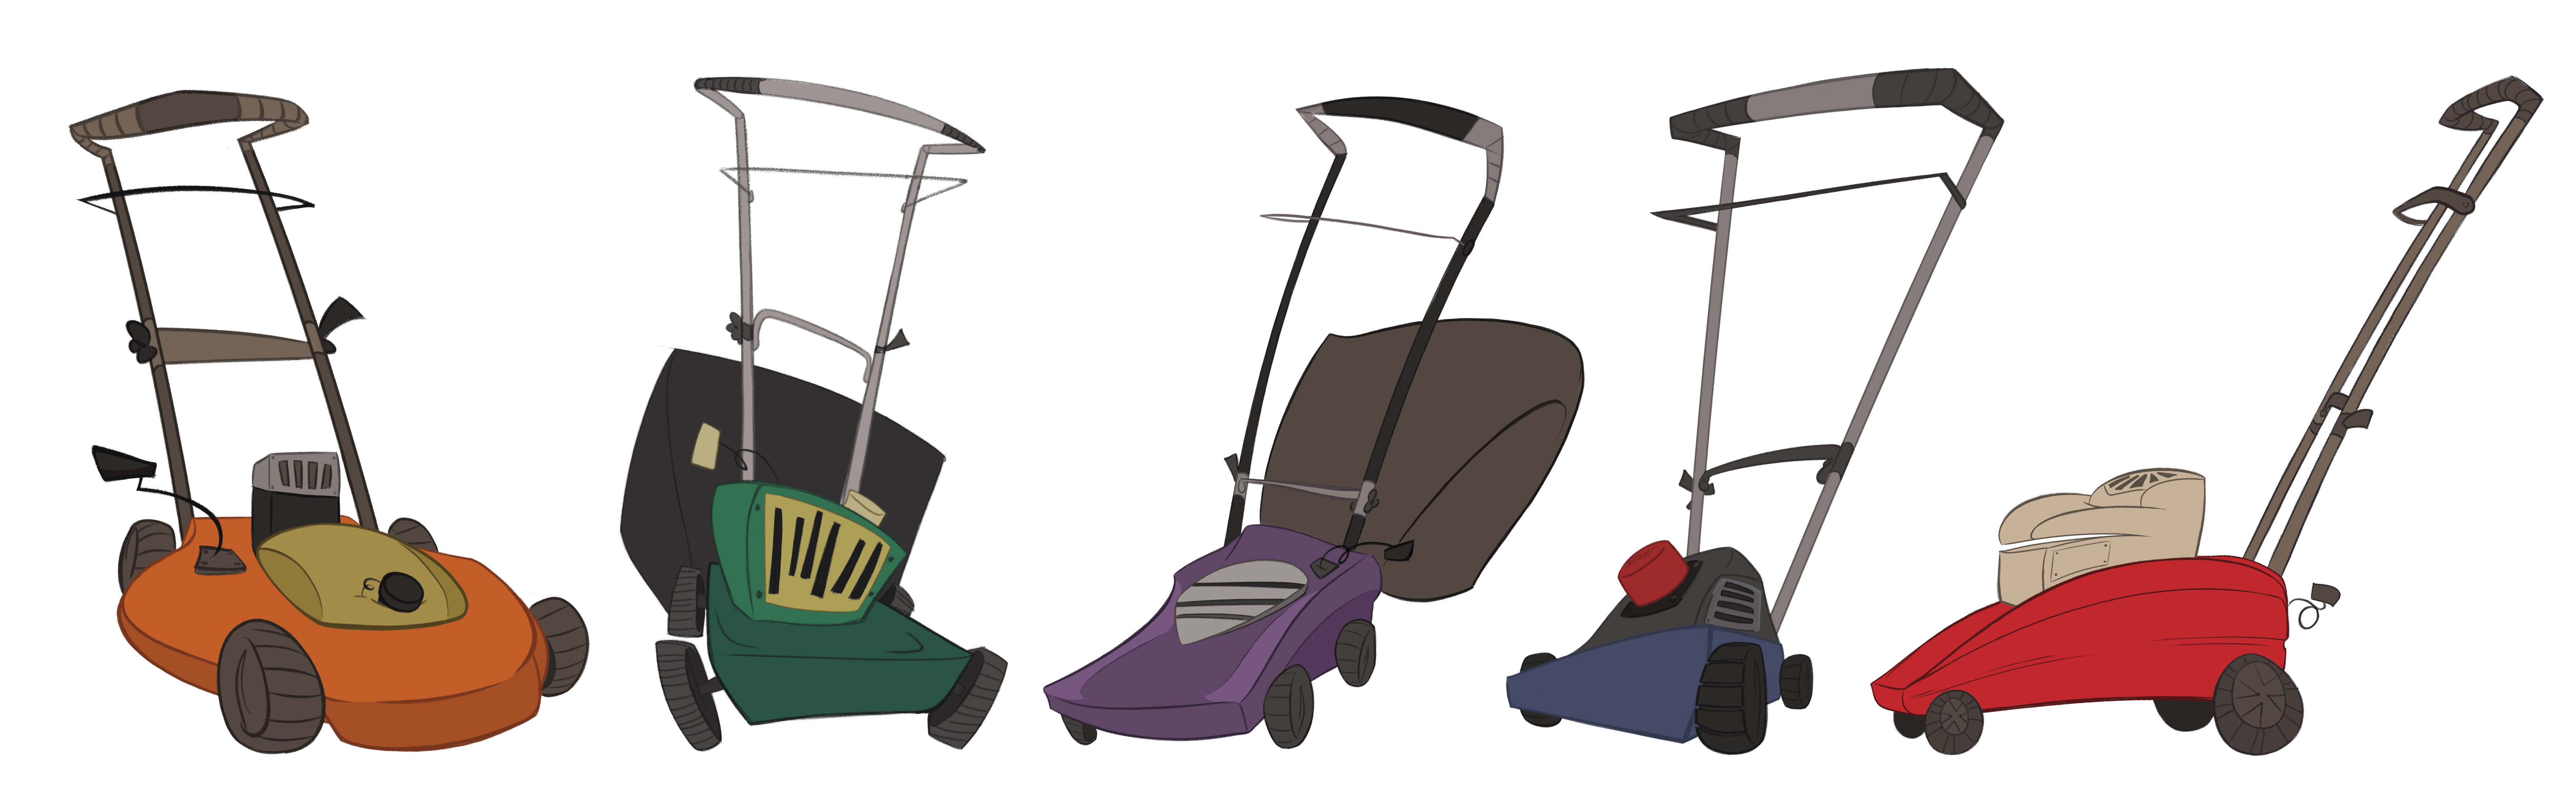 Lawnmower Concepts